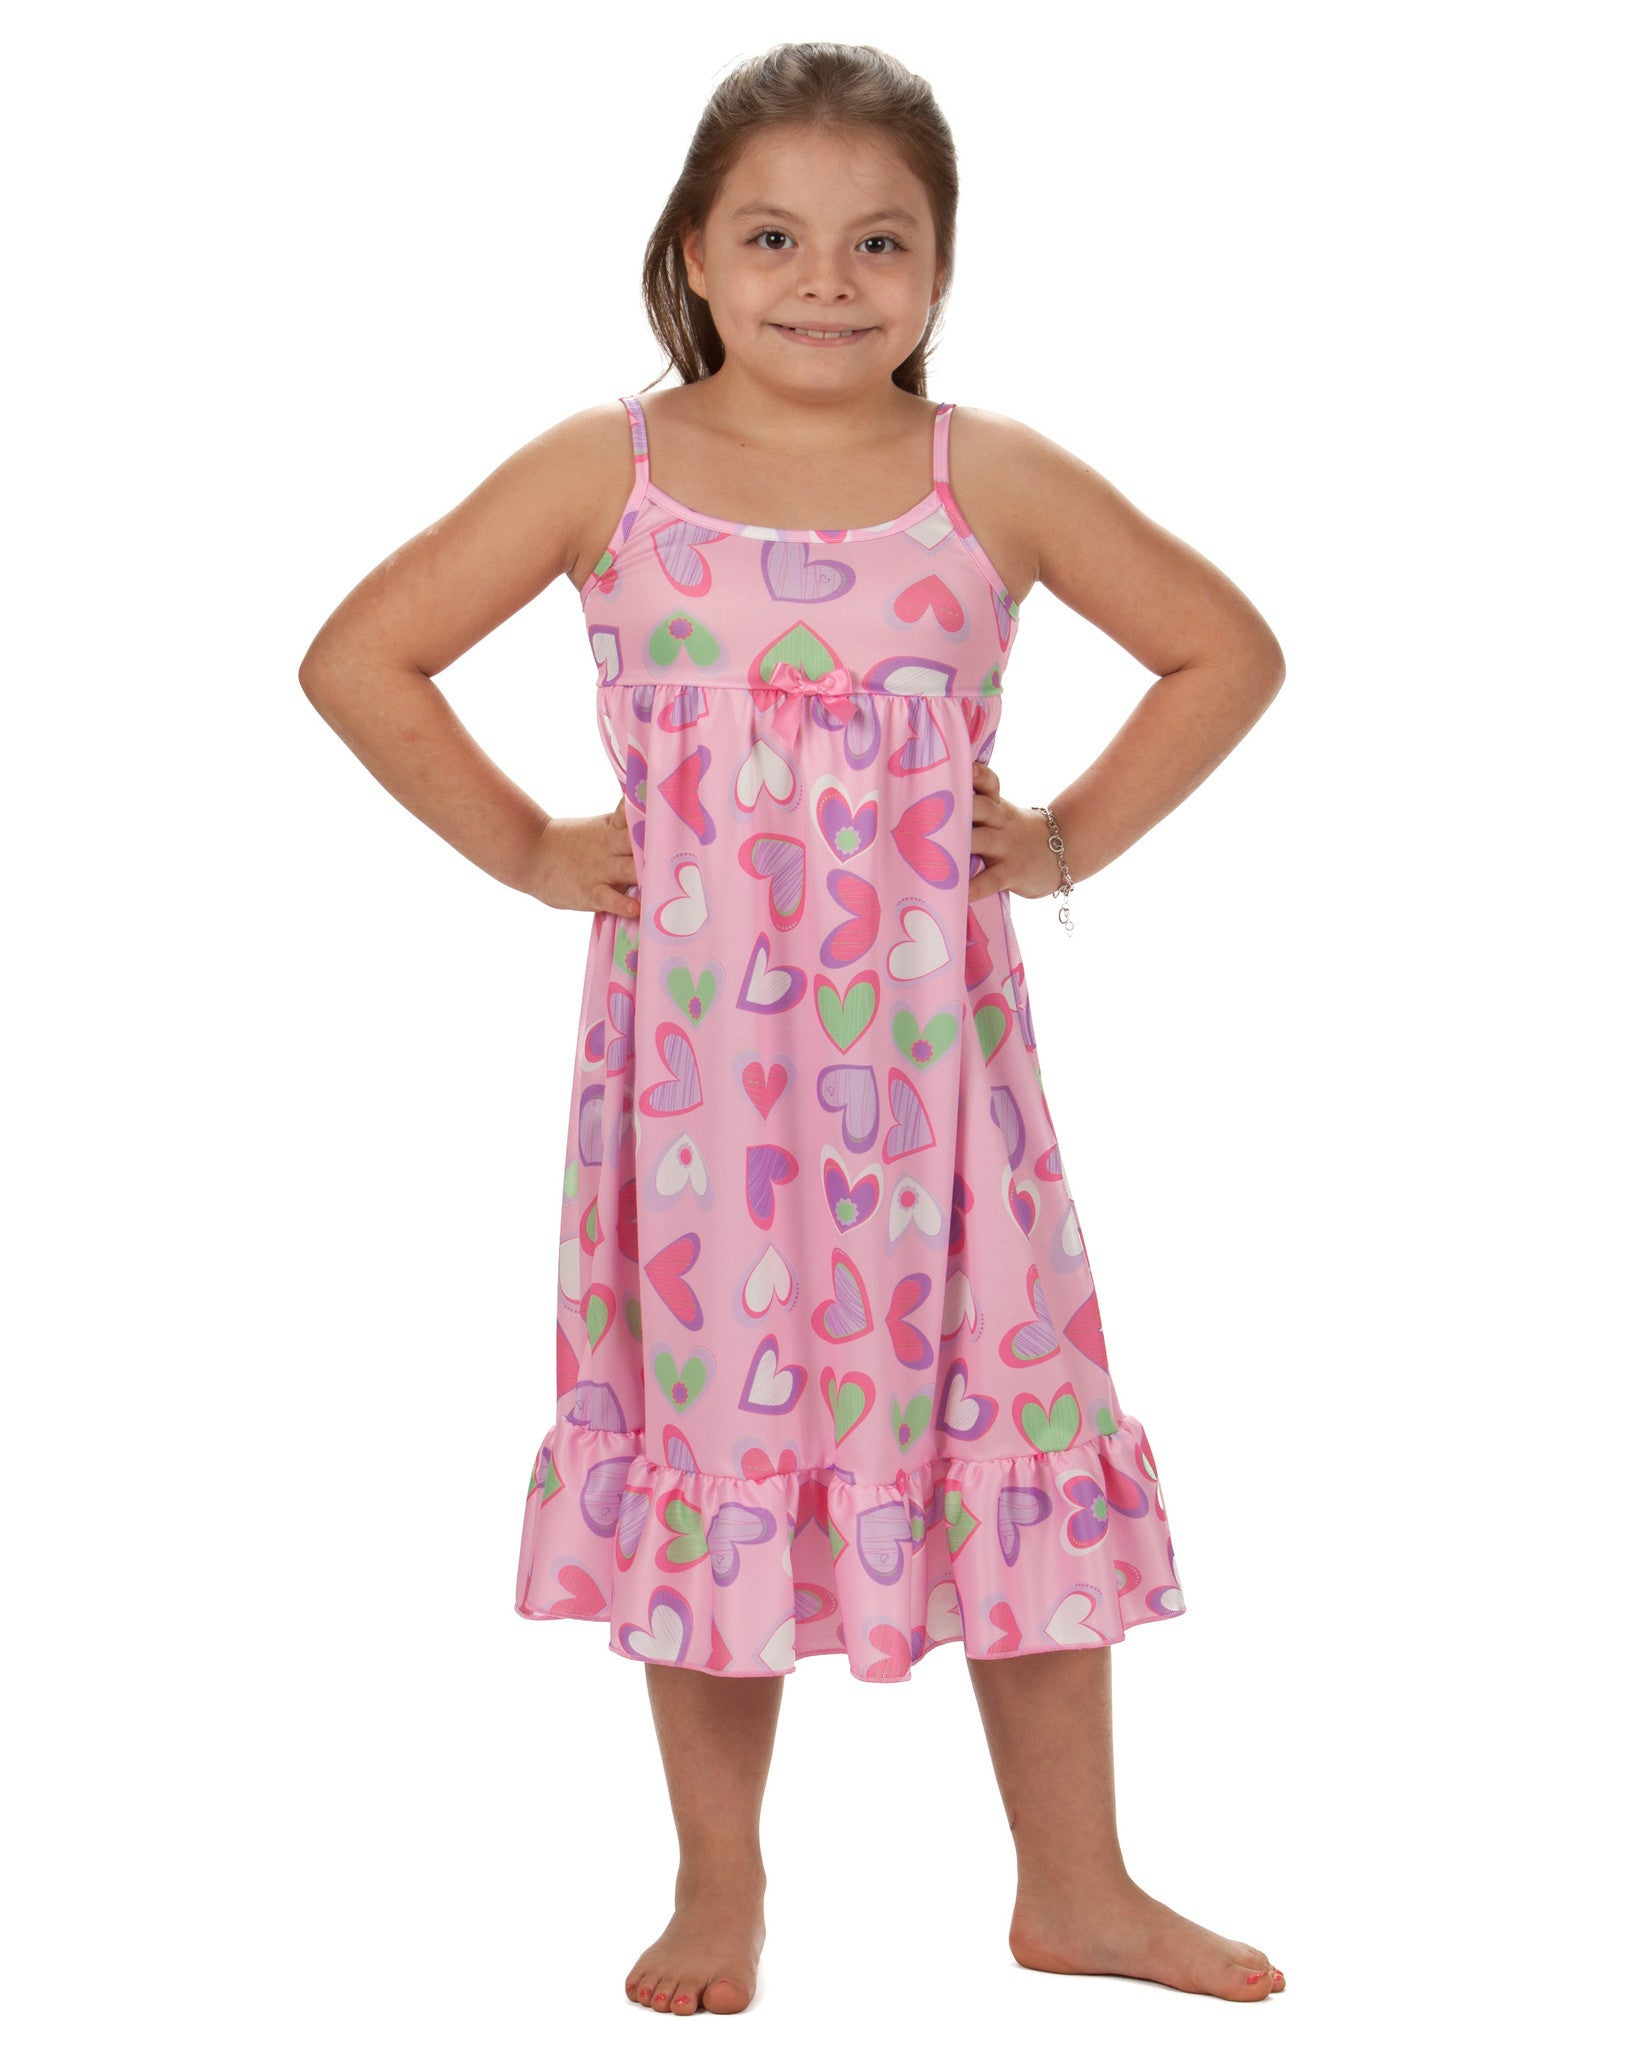 Laura Dare Heart To Heart Spaghetti Strap Nightgown (2T - 14)